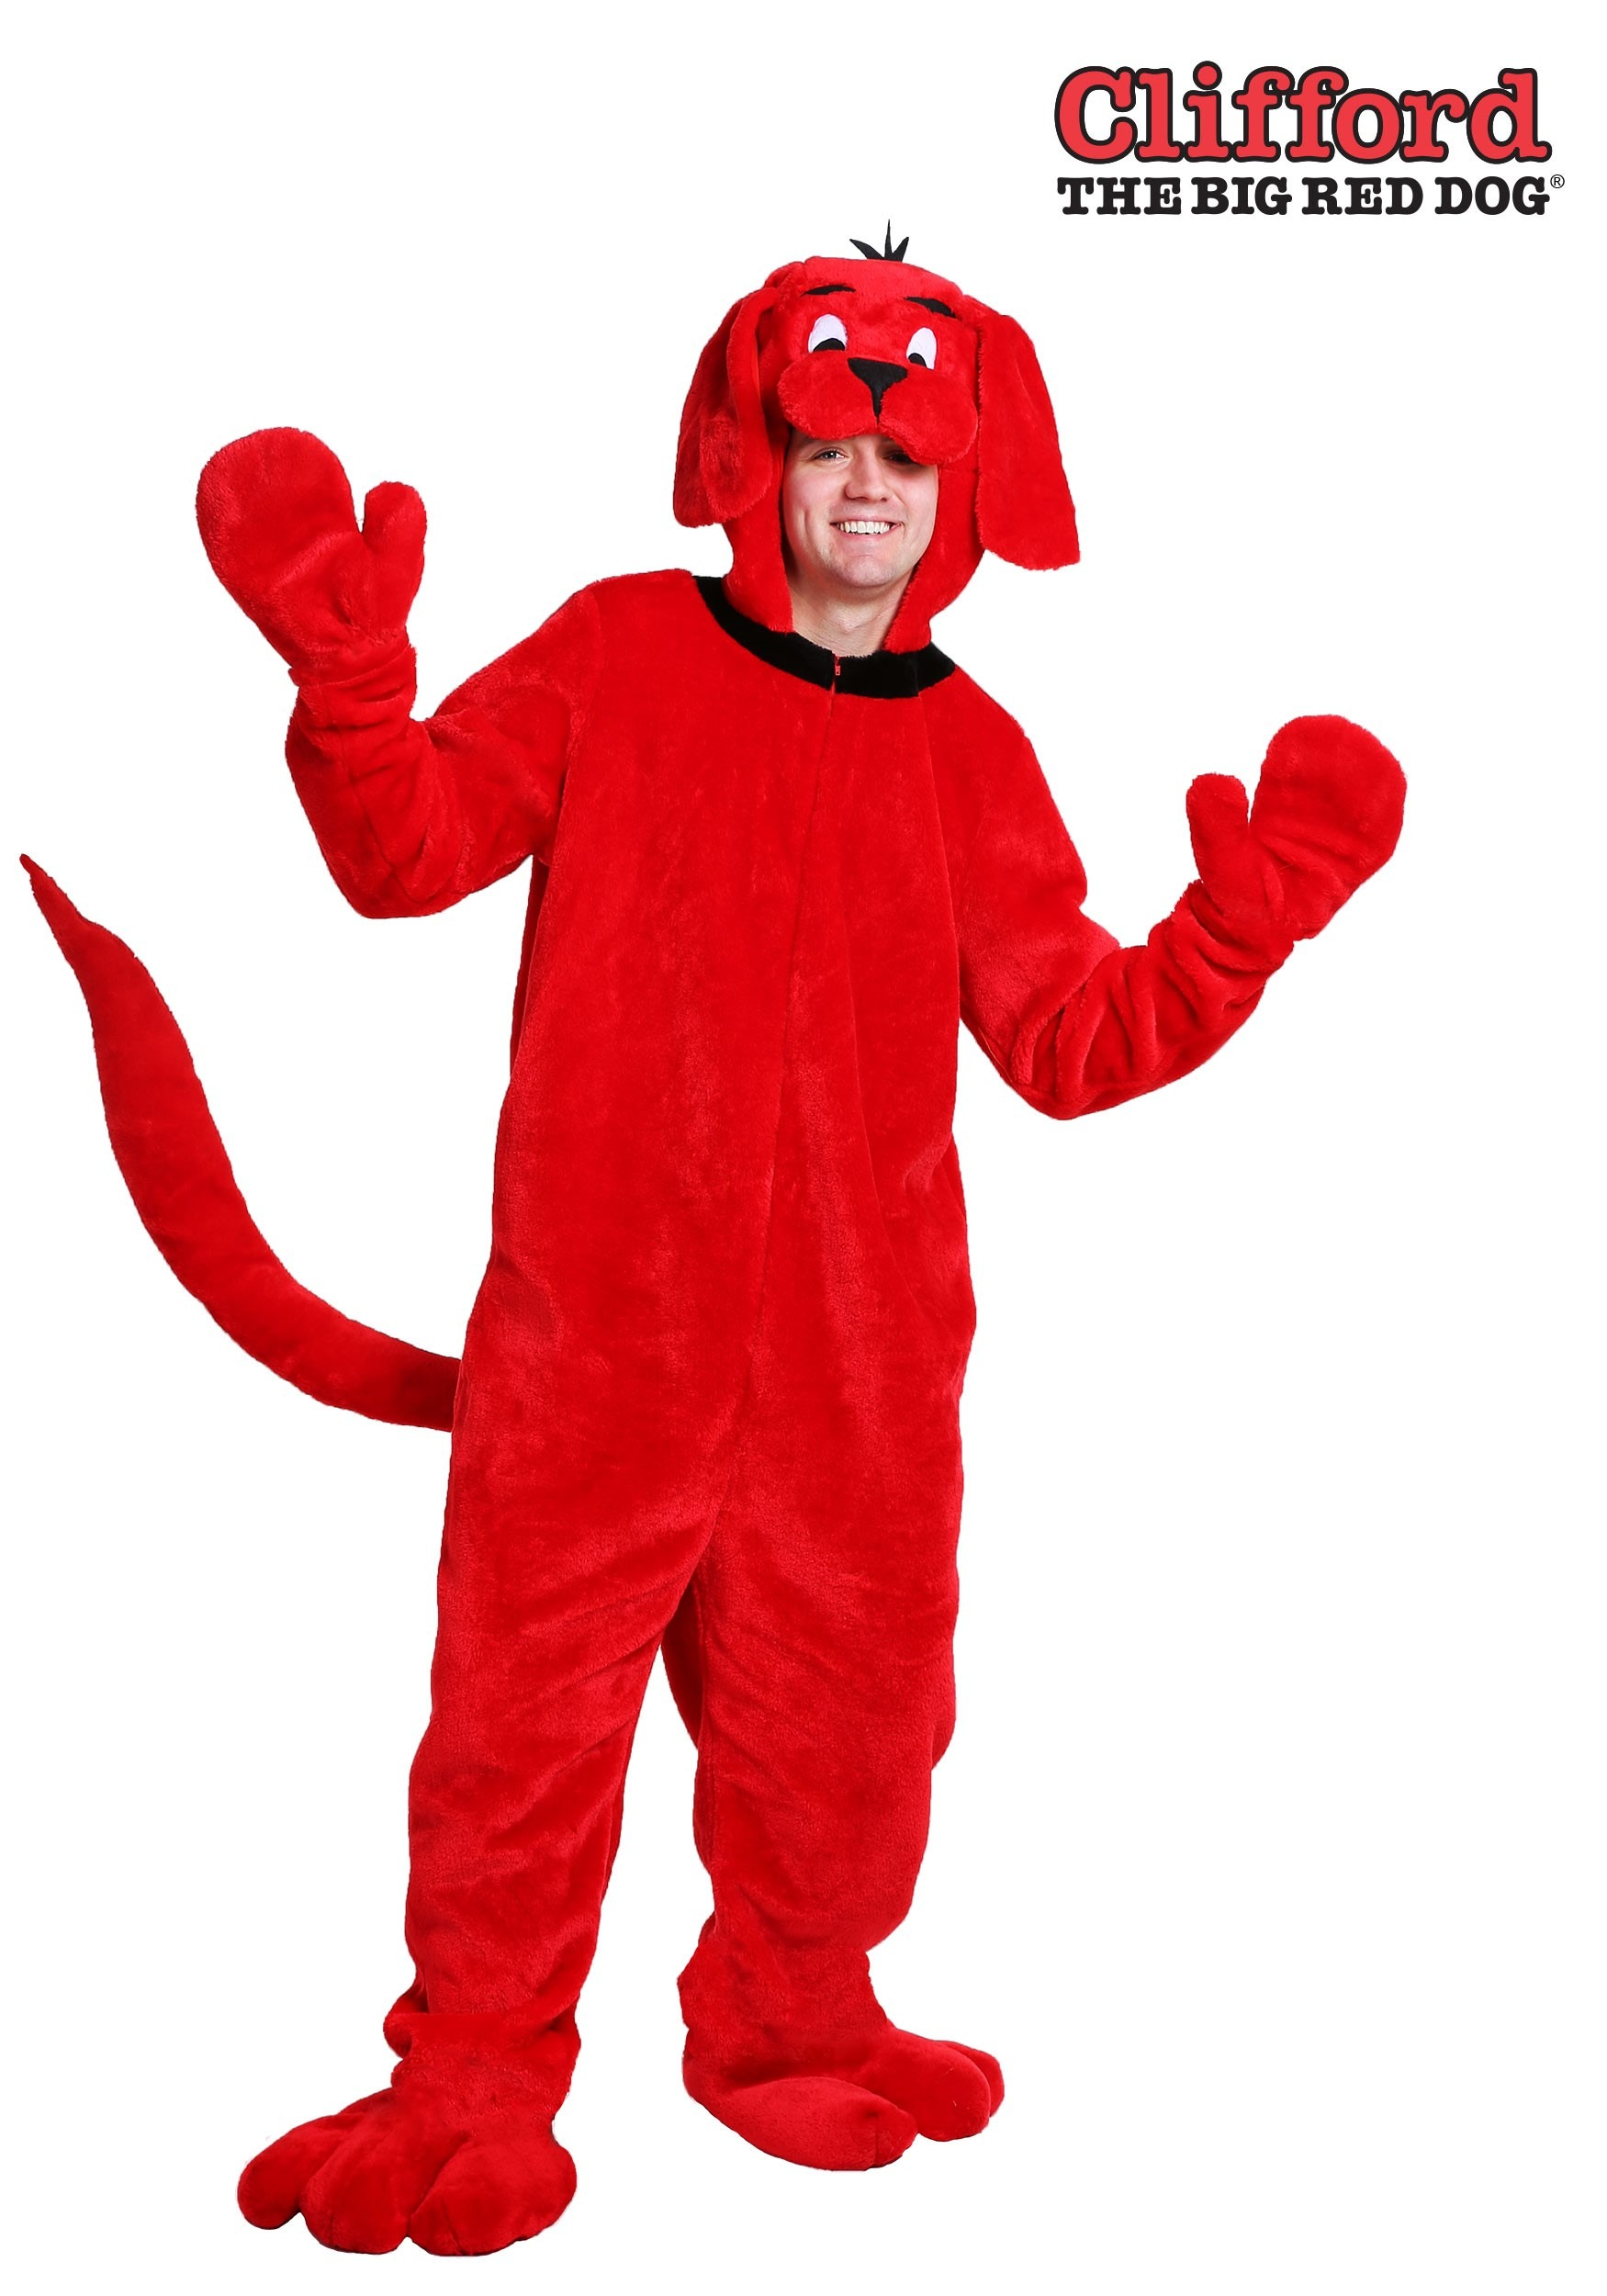 clifford the big red dog adult costume - Clifford The Big Red Dog Halloween Costume